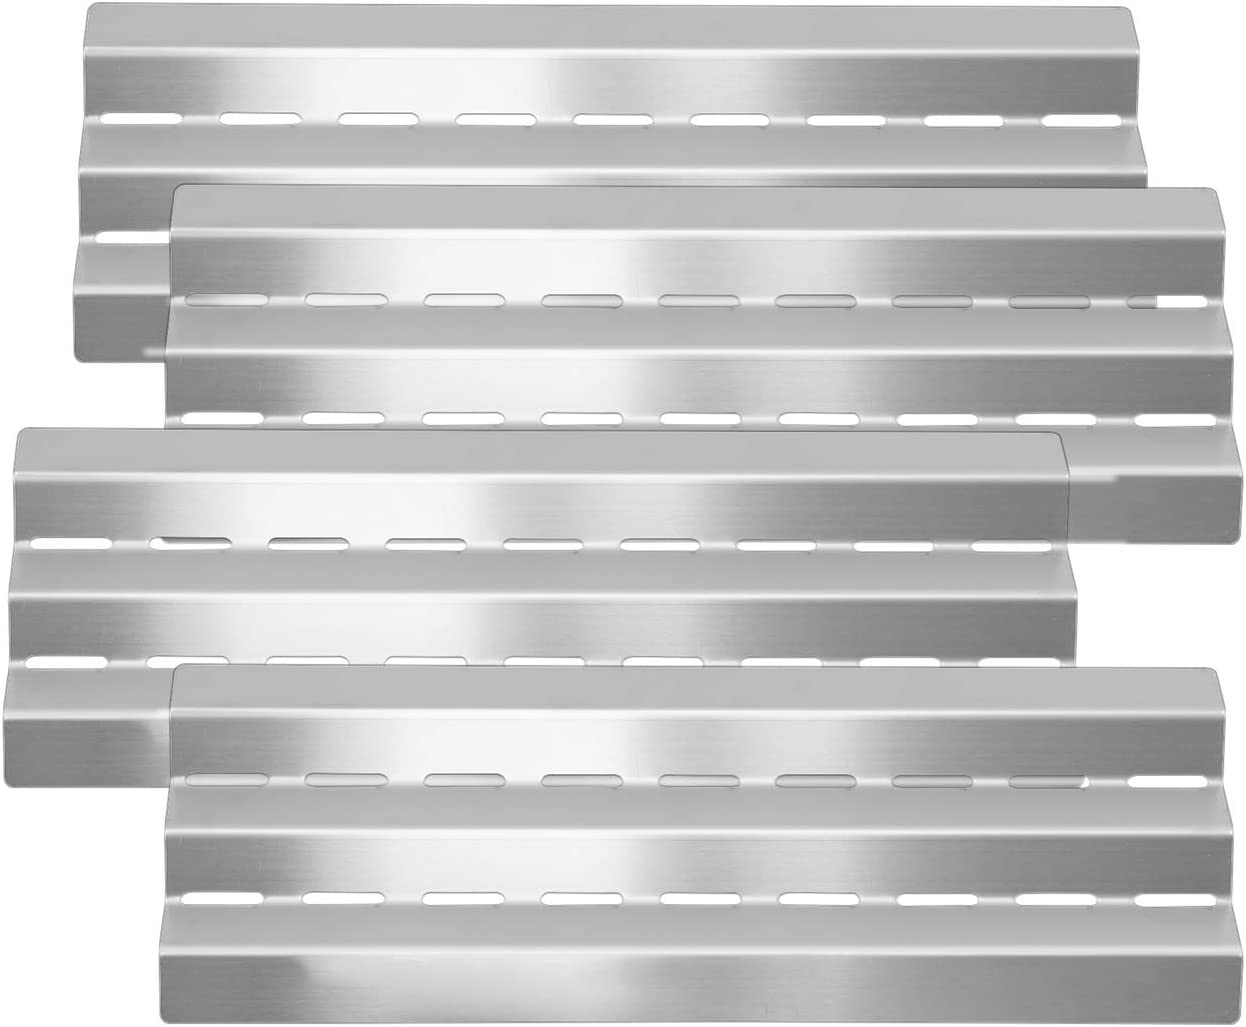 Kalomo Stainless Steel Grill Heat Plate Shield Burner Cover Heat Tent, BBQ Gas Grill Replacement Parts for Master Forge, Lowes, Perfect Flame, Huntington 6761-64, GrillPro 235089S, 17-9/16